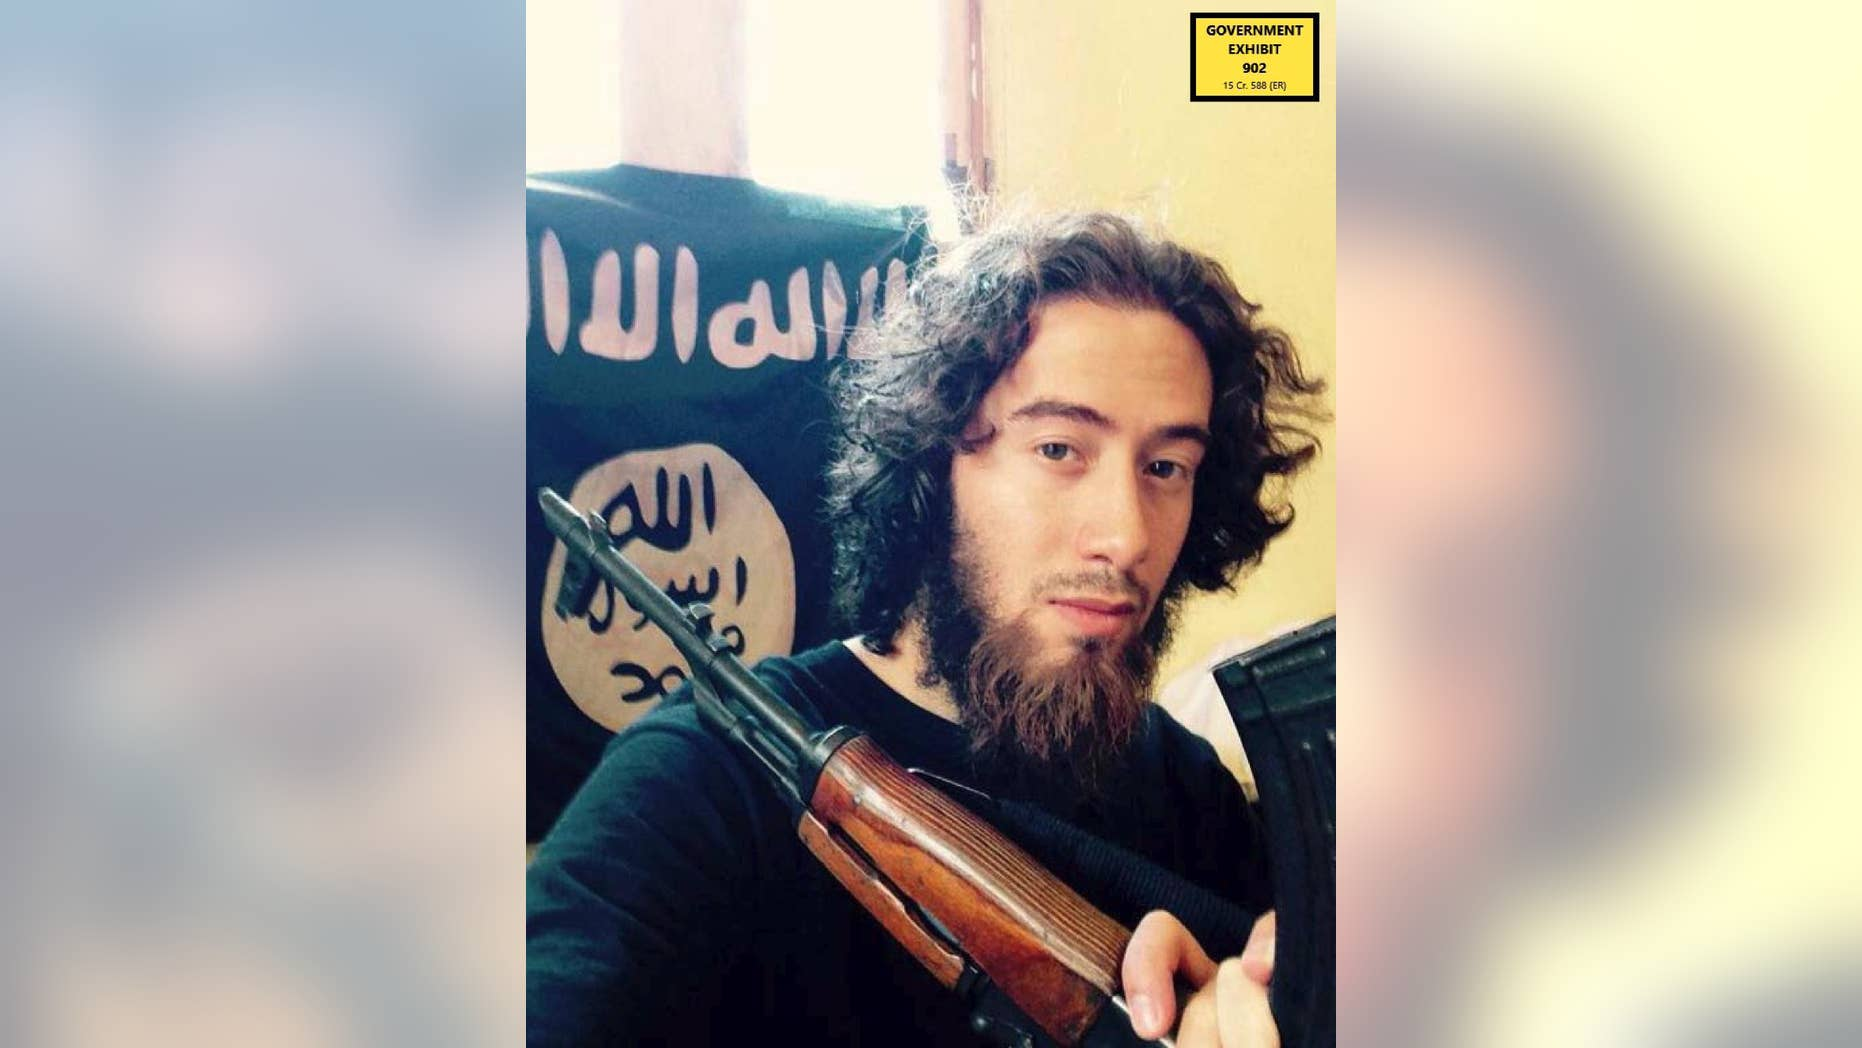 In this undated photo provided by the United States Attorney for the Southern District of New York, Samy el-Goarany poses for a photo with a weapon and the ISIS flag. (U.S. Attorney's Office for the Southern Distirct of New York via AP)